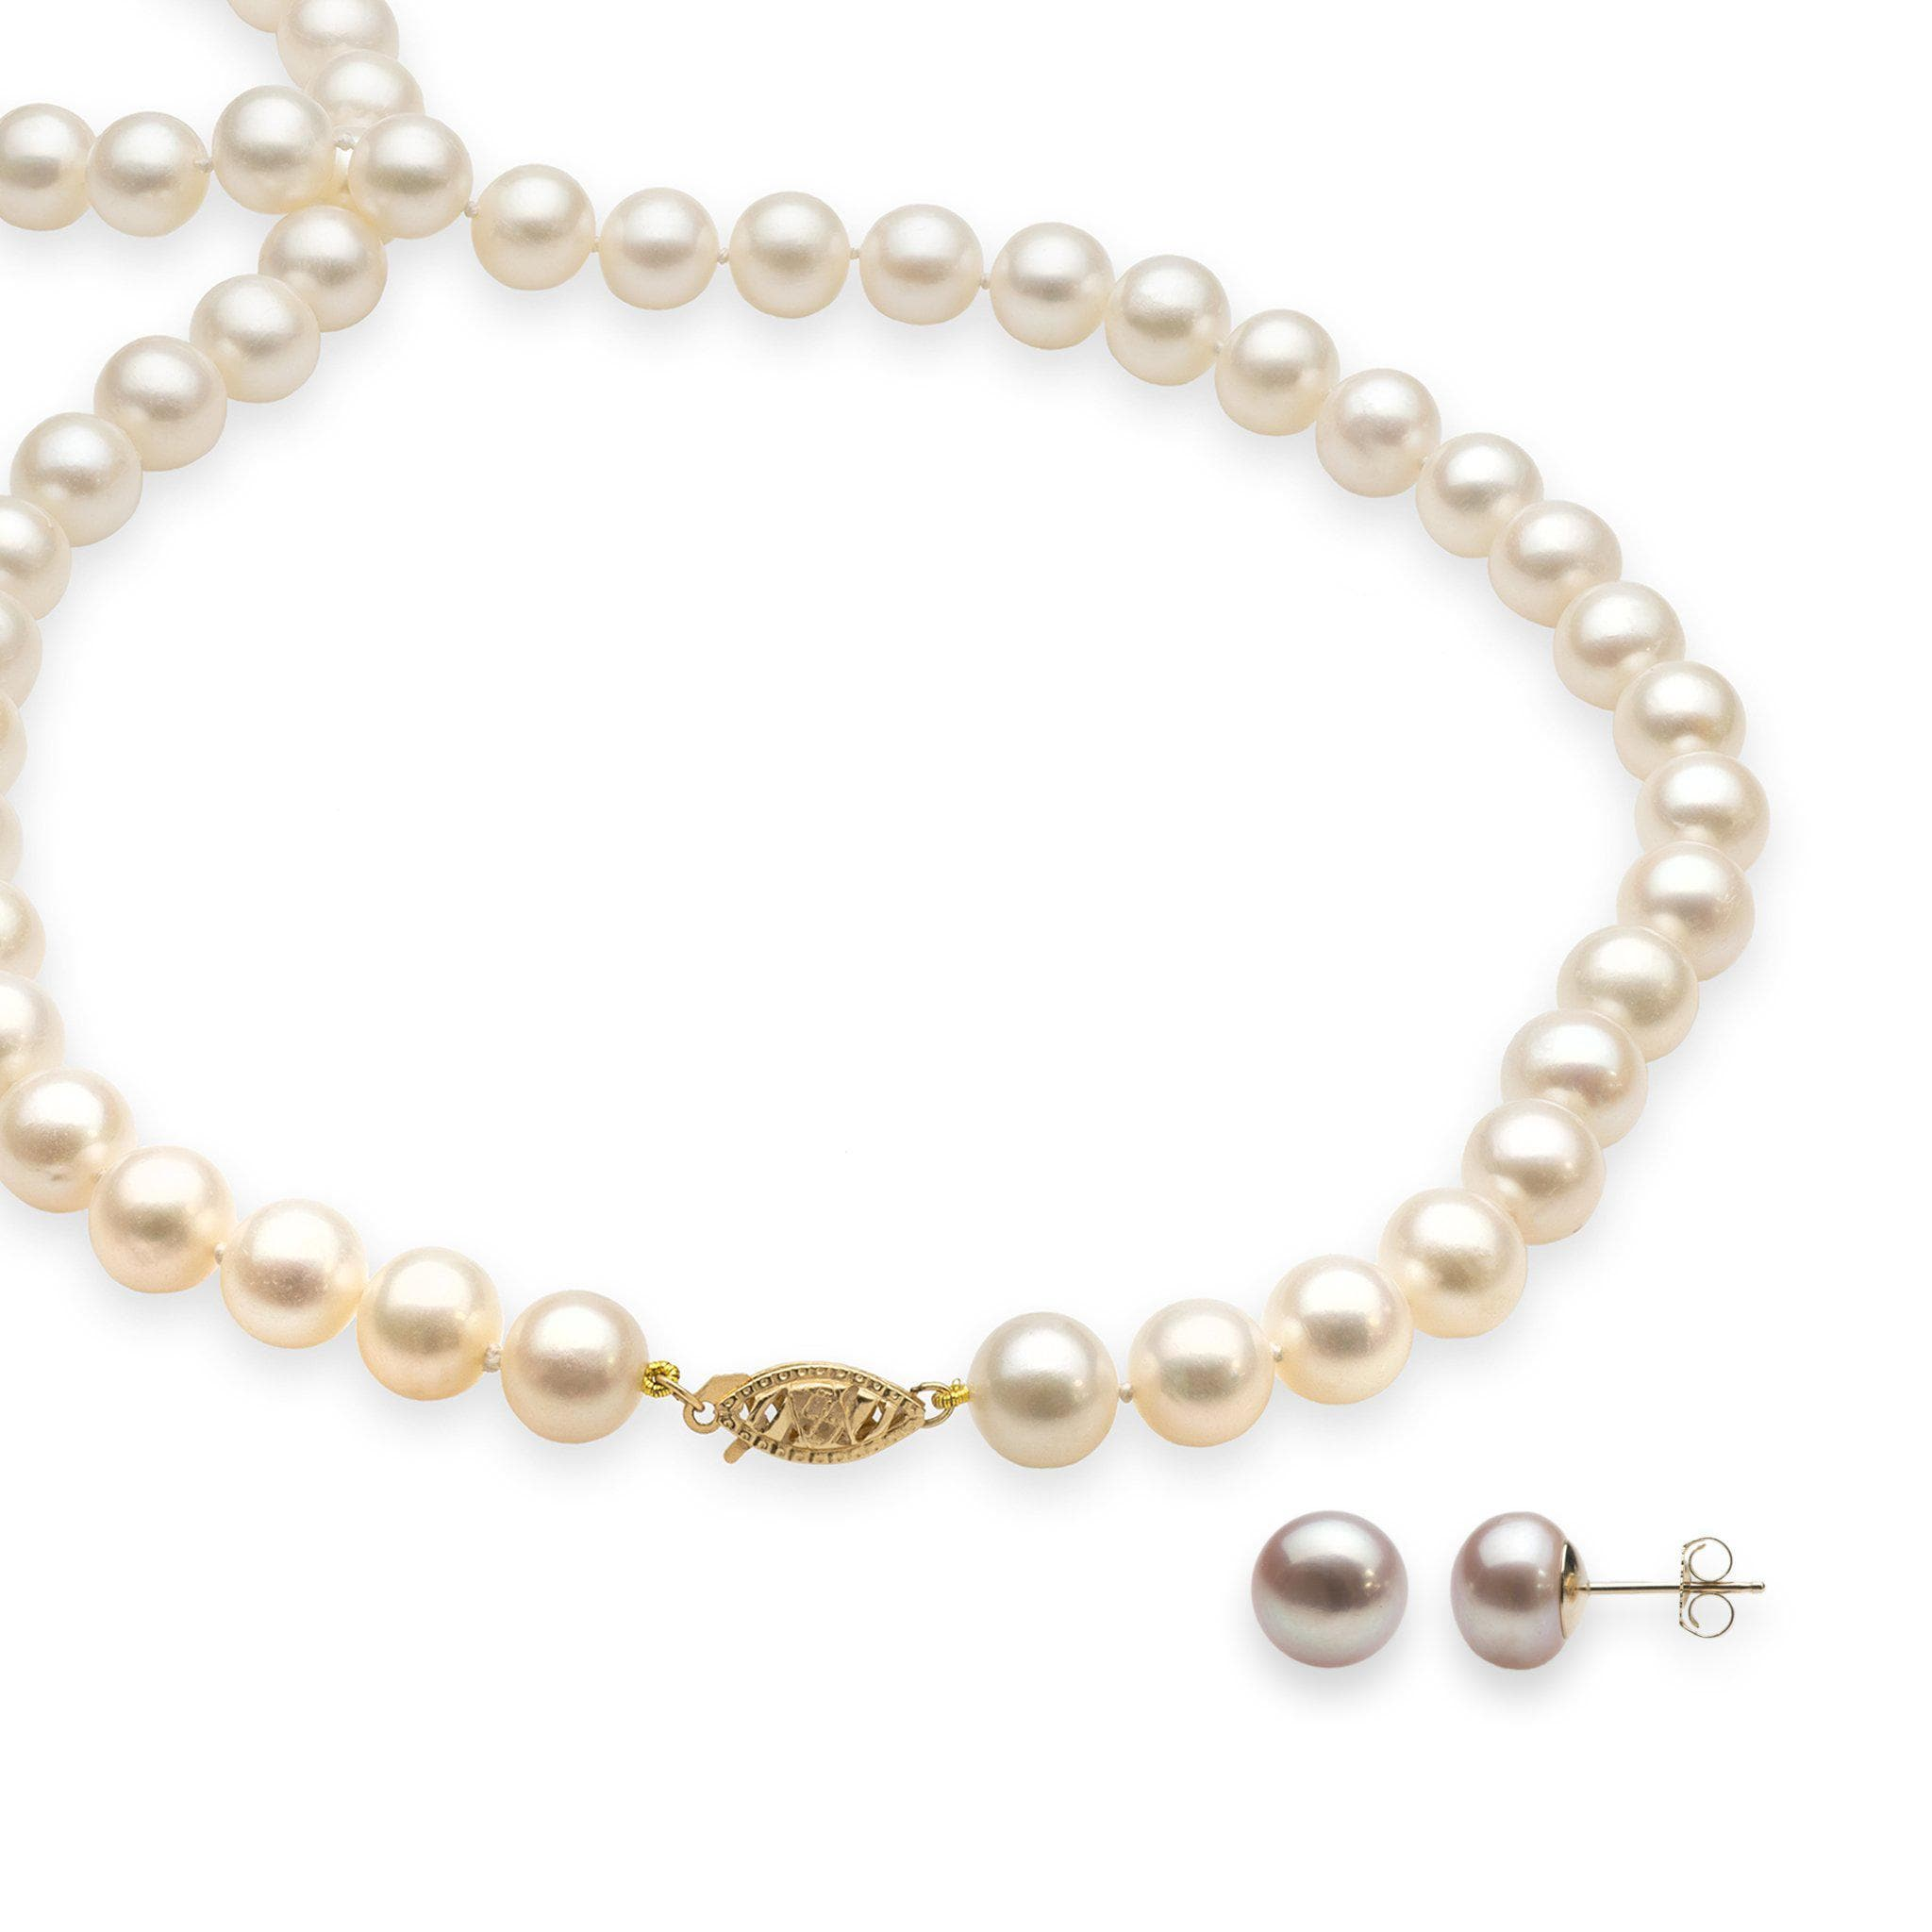 shipping beads today pearl lariat and free gold white necklace product overstock types tahitian black pearls watches davonna jewelry